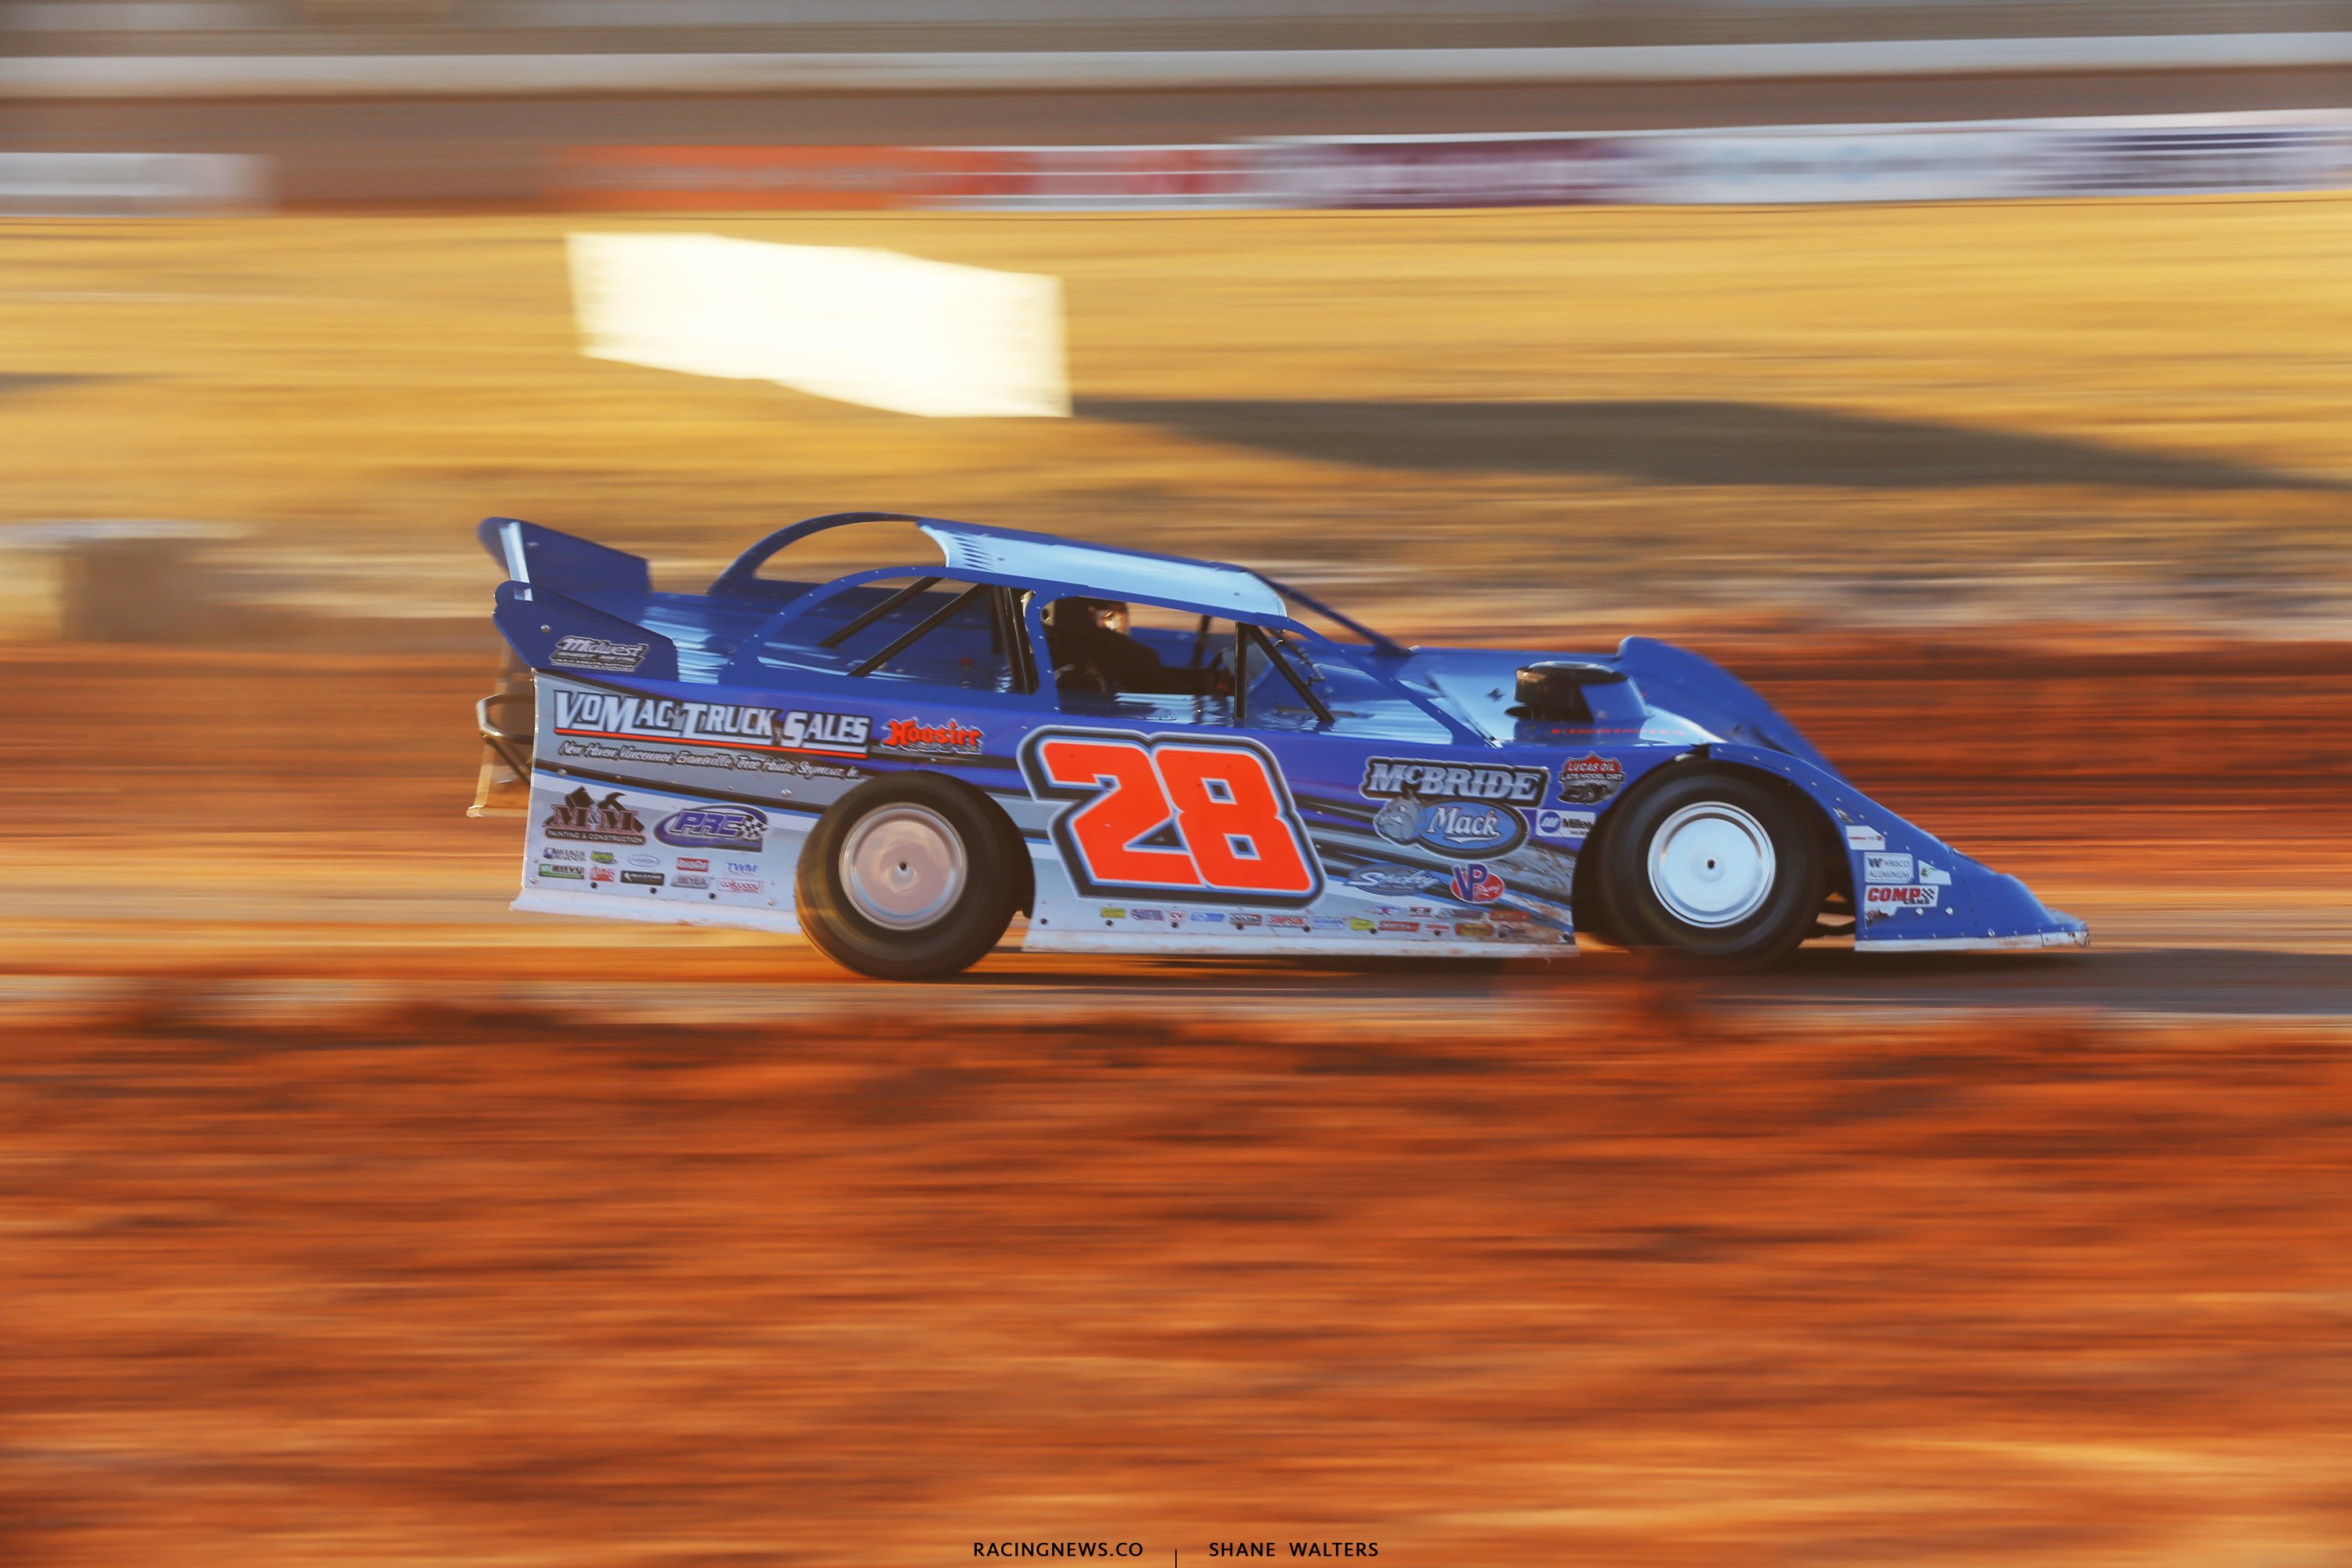 Dennis Erb Jr in the Lucas Oil Late Model Dirt Series event at Golden Isles Speedway 6321